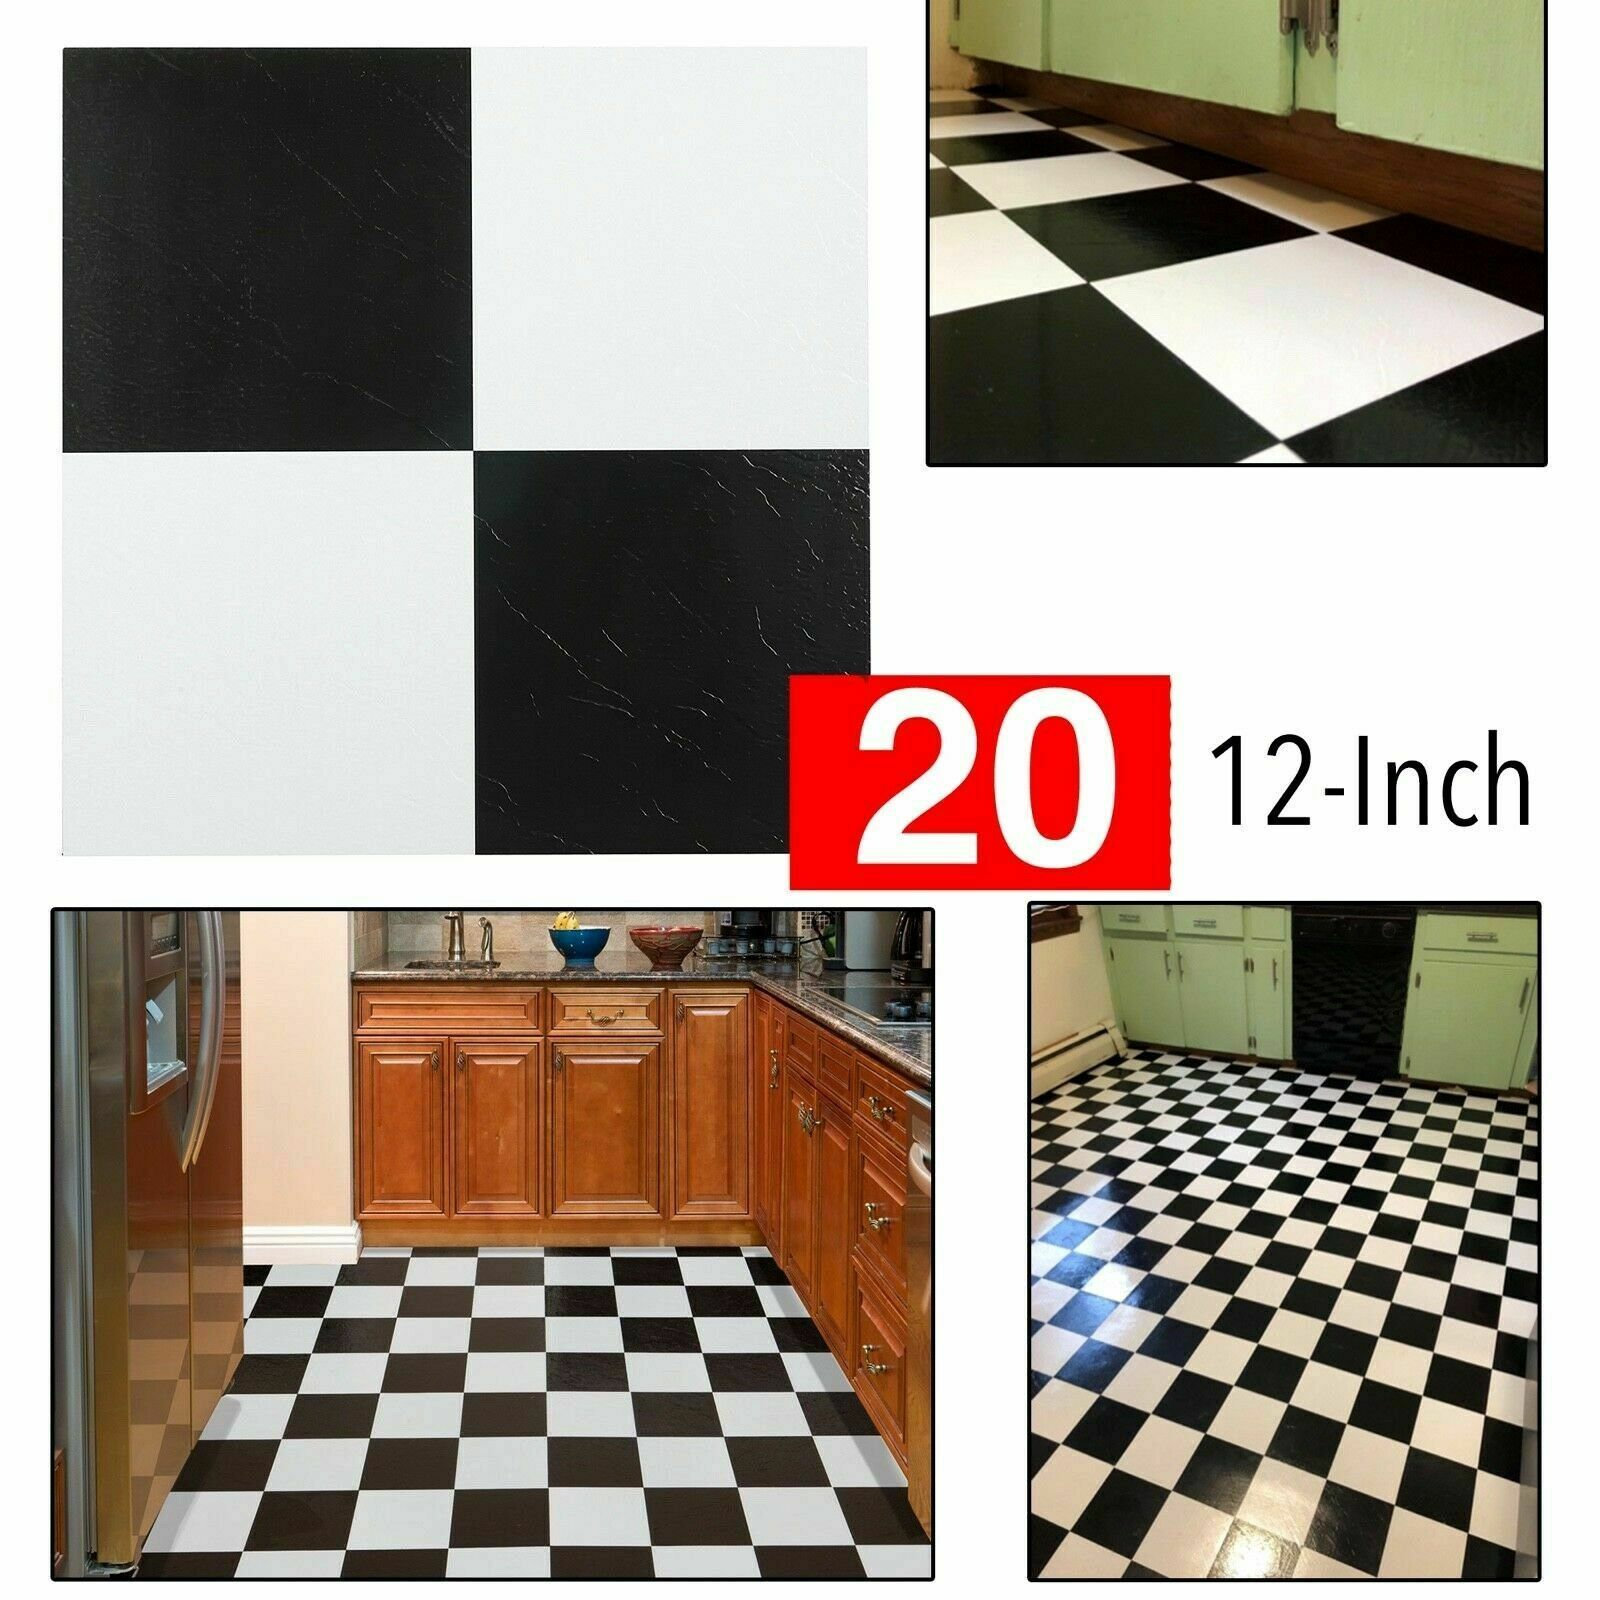 Vinyl Flooring Black And White Tiles Kitchen Floor Thick Peel N Stick Vinyl Flooring Ideas Of Vinyl Flooring Vin In 2020 Vinyl Flooring Kitchen Flooring Flooring